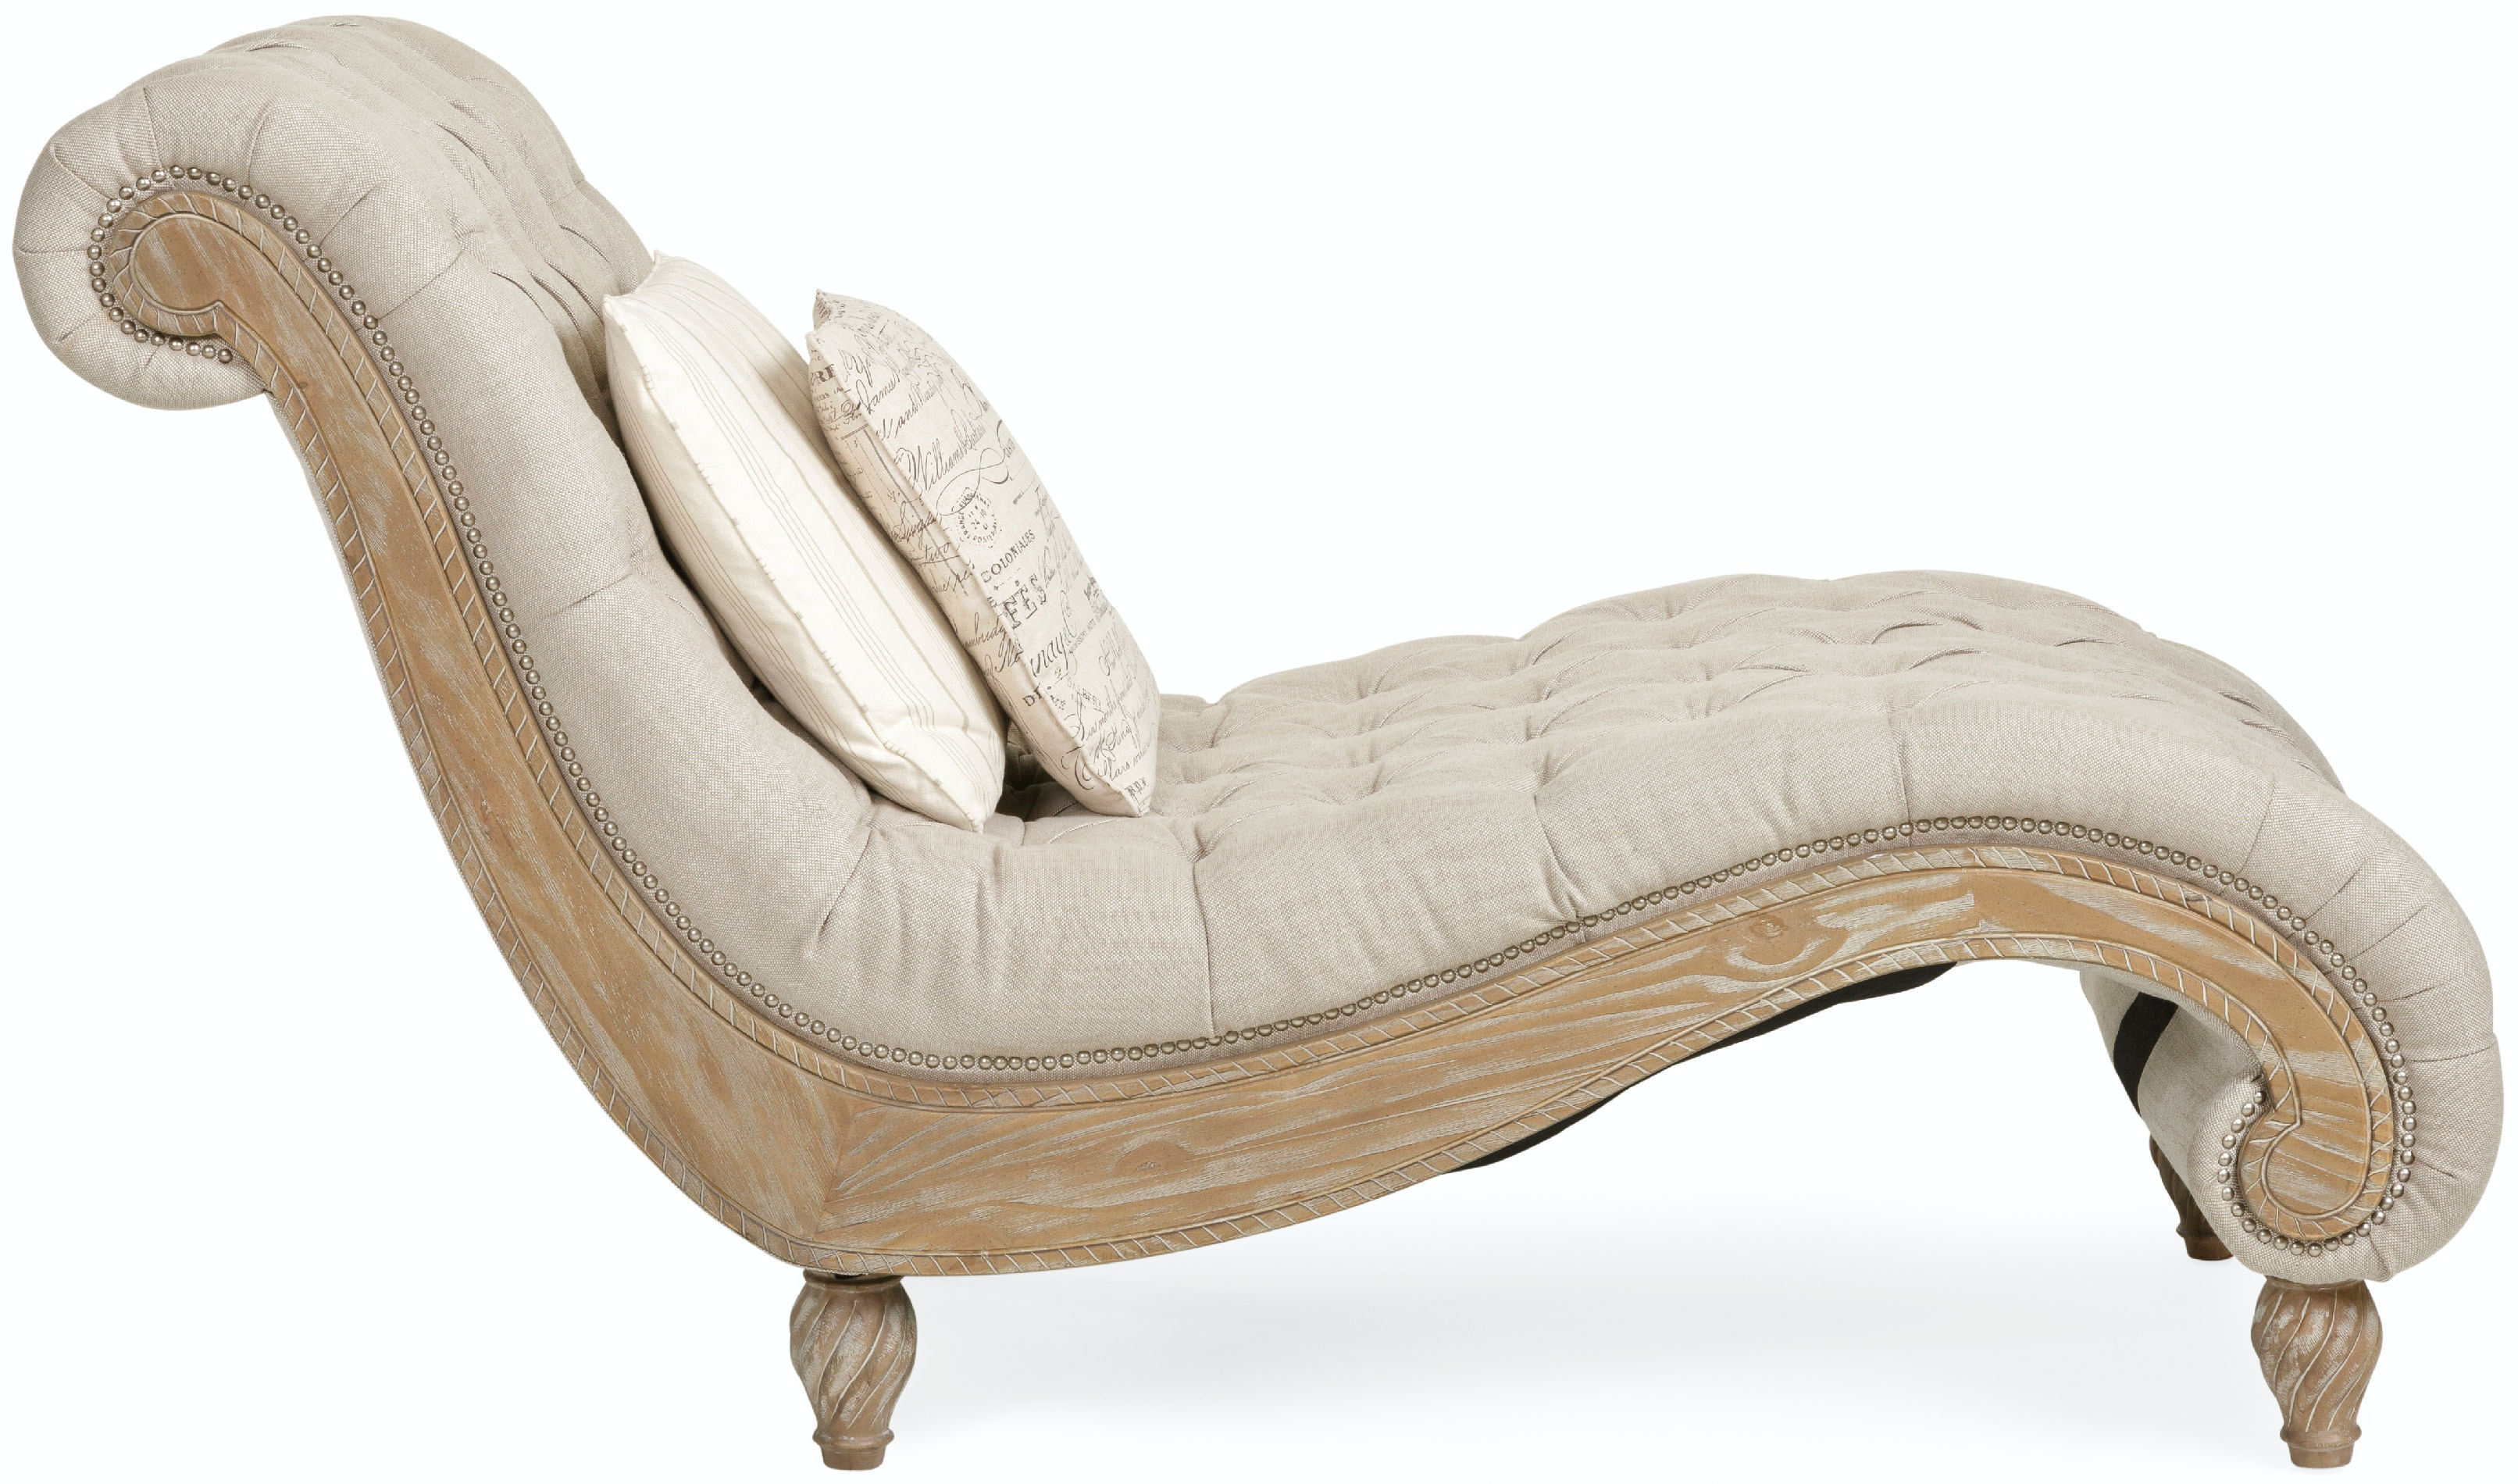 Dinah Tufted Chaise - LINEN ST413297  sc 1 st  Star Furniture : dinah chaise - Sectionals, Sofas & Couches